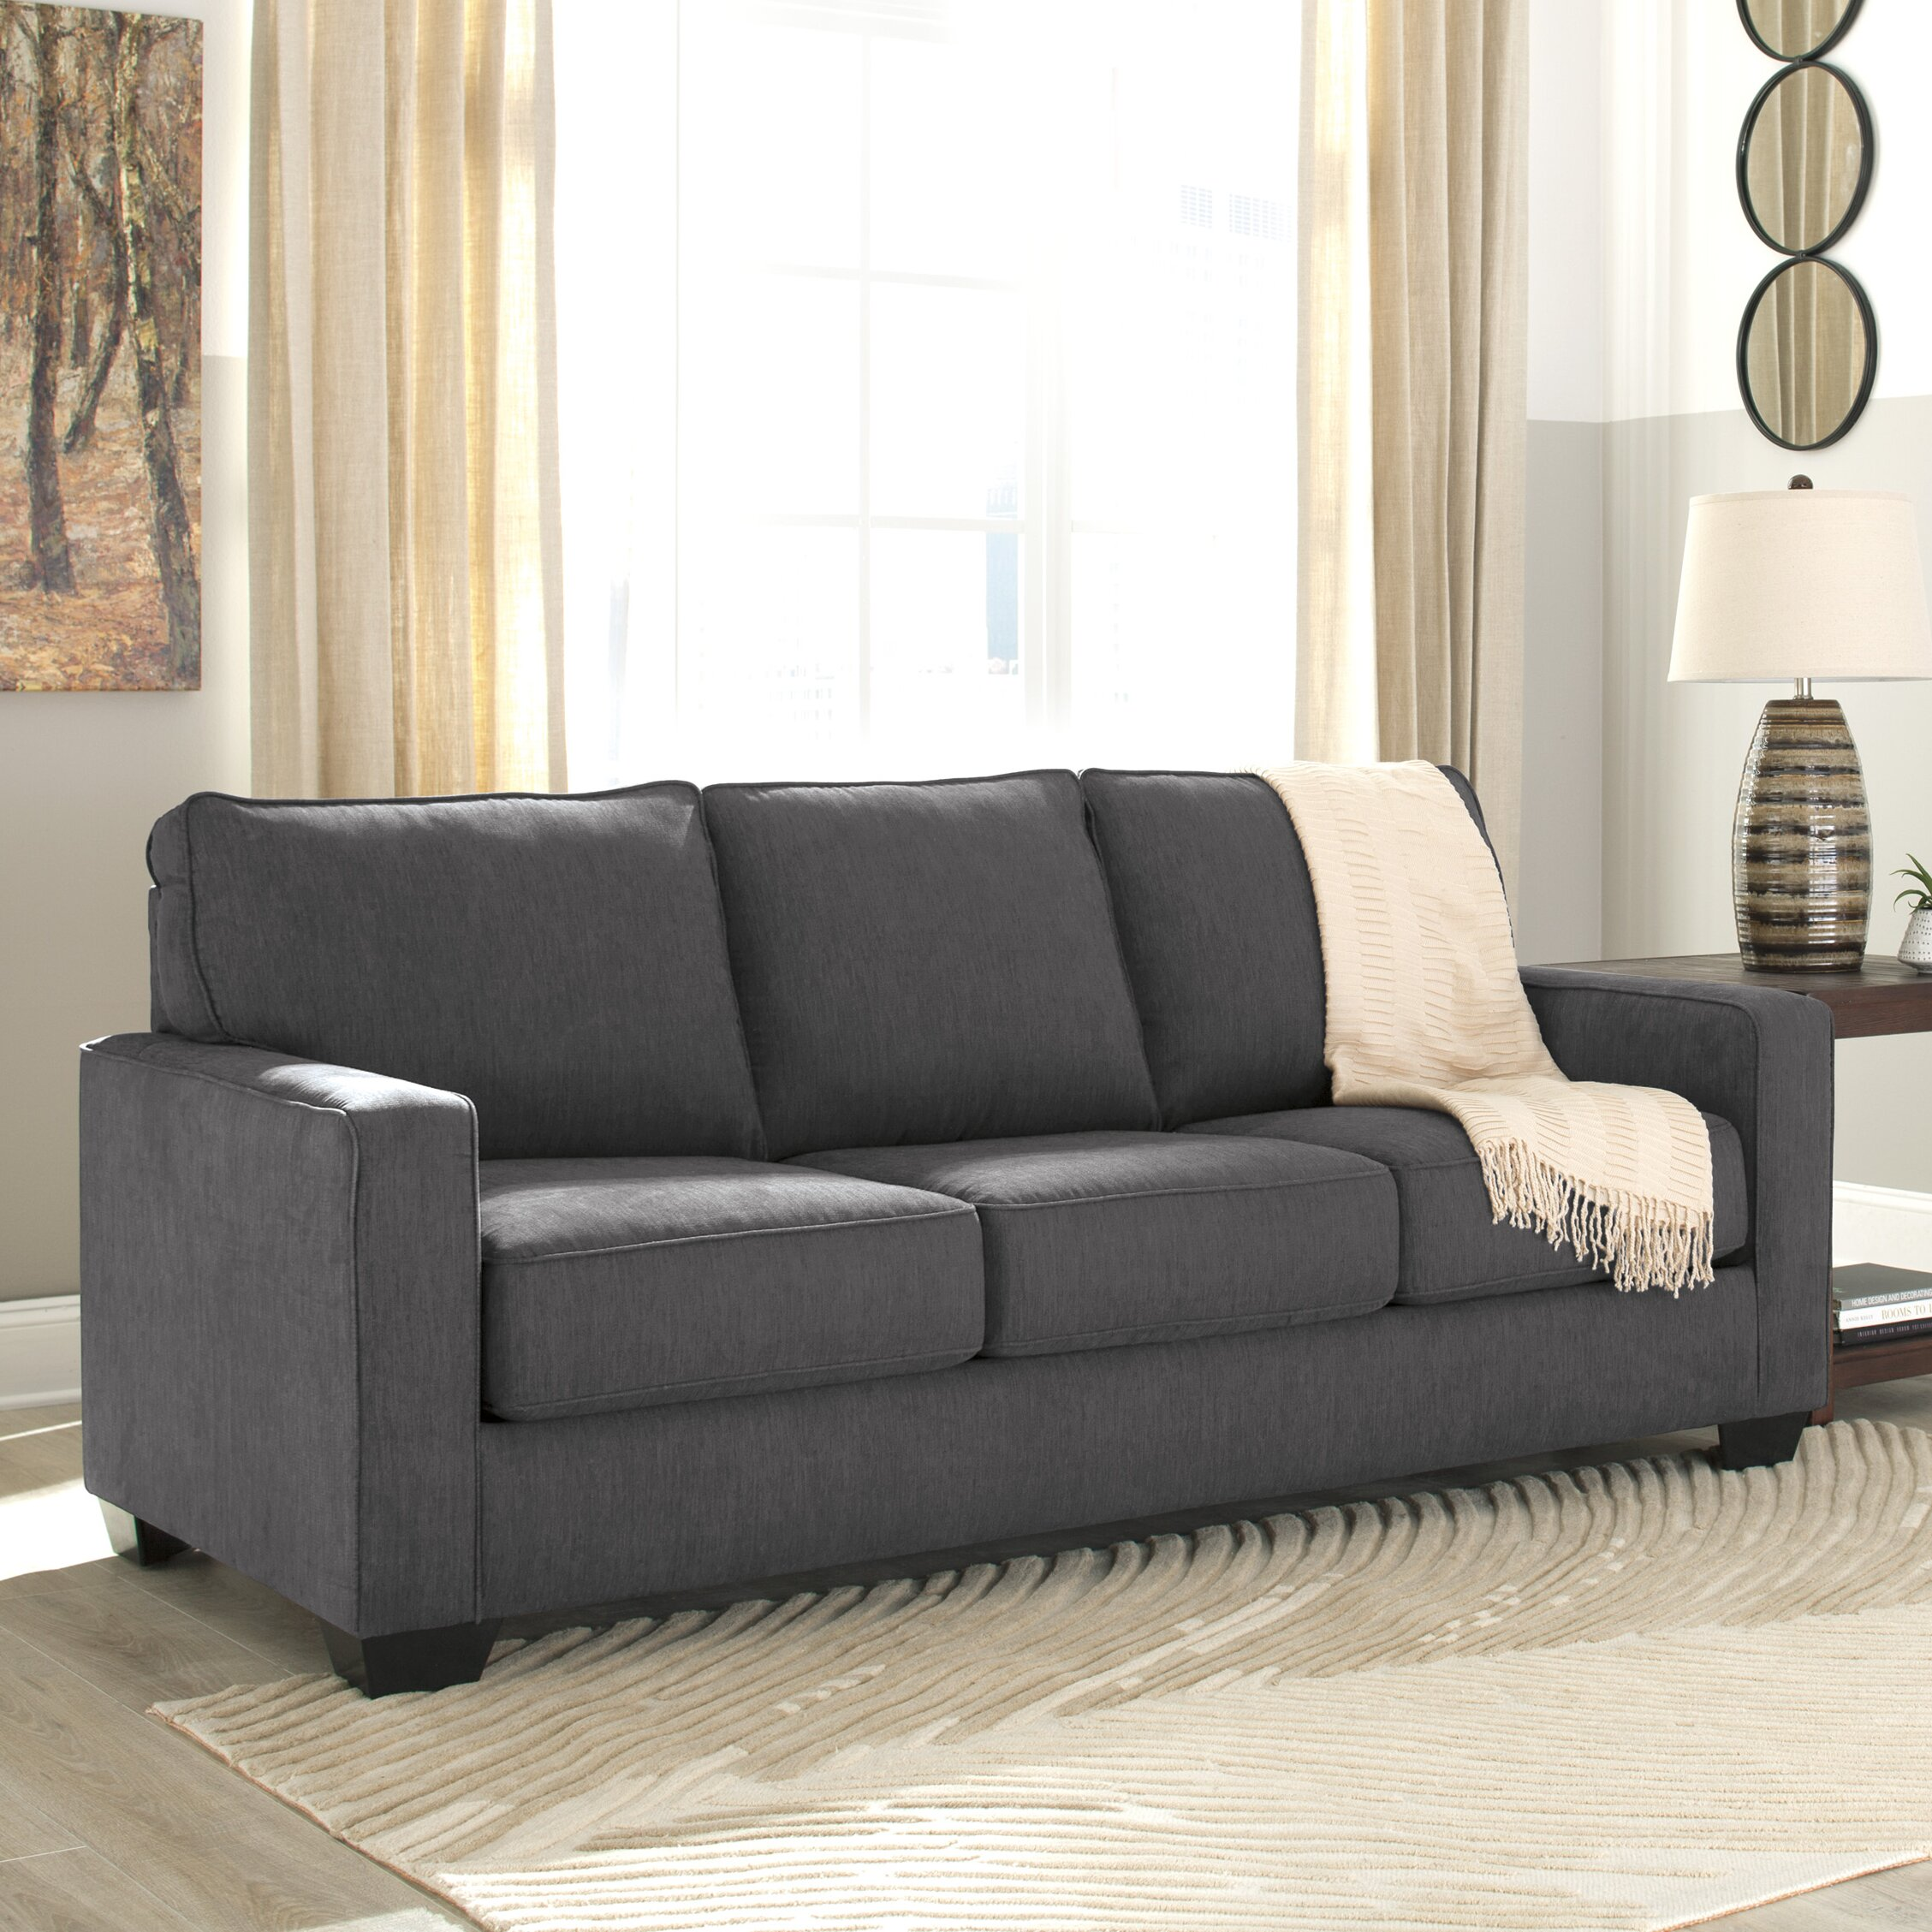 benchcraft zeb queen sleeper sofa reviews. Black Bedroom Furniture Sets. Home Design Ideas